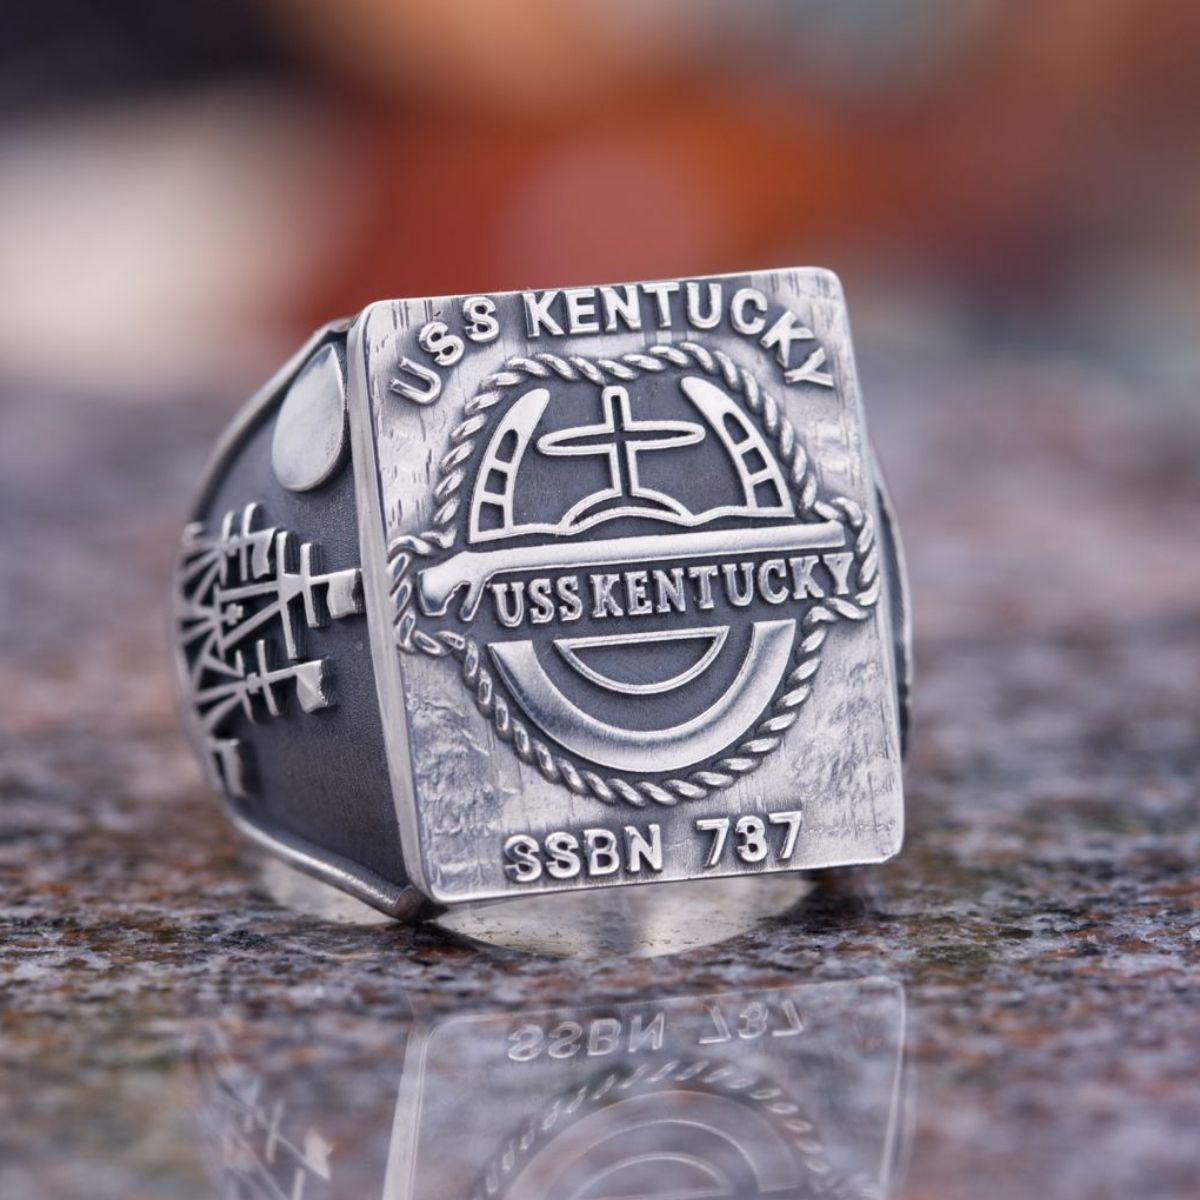 the profile pennsylvania ring class symbolism military college rings of